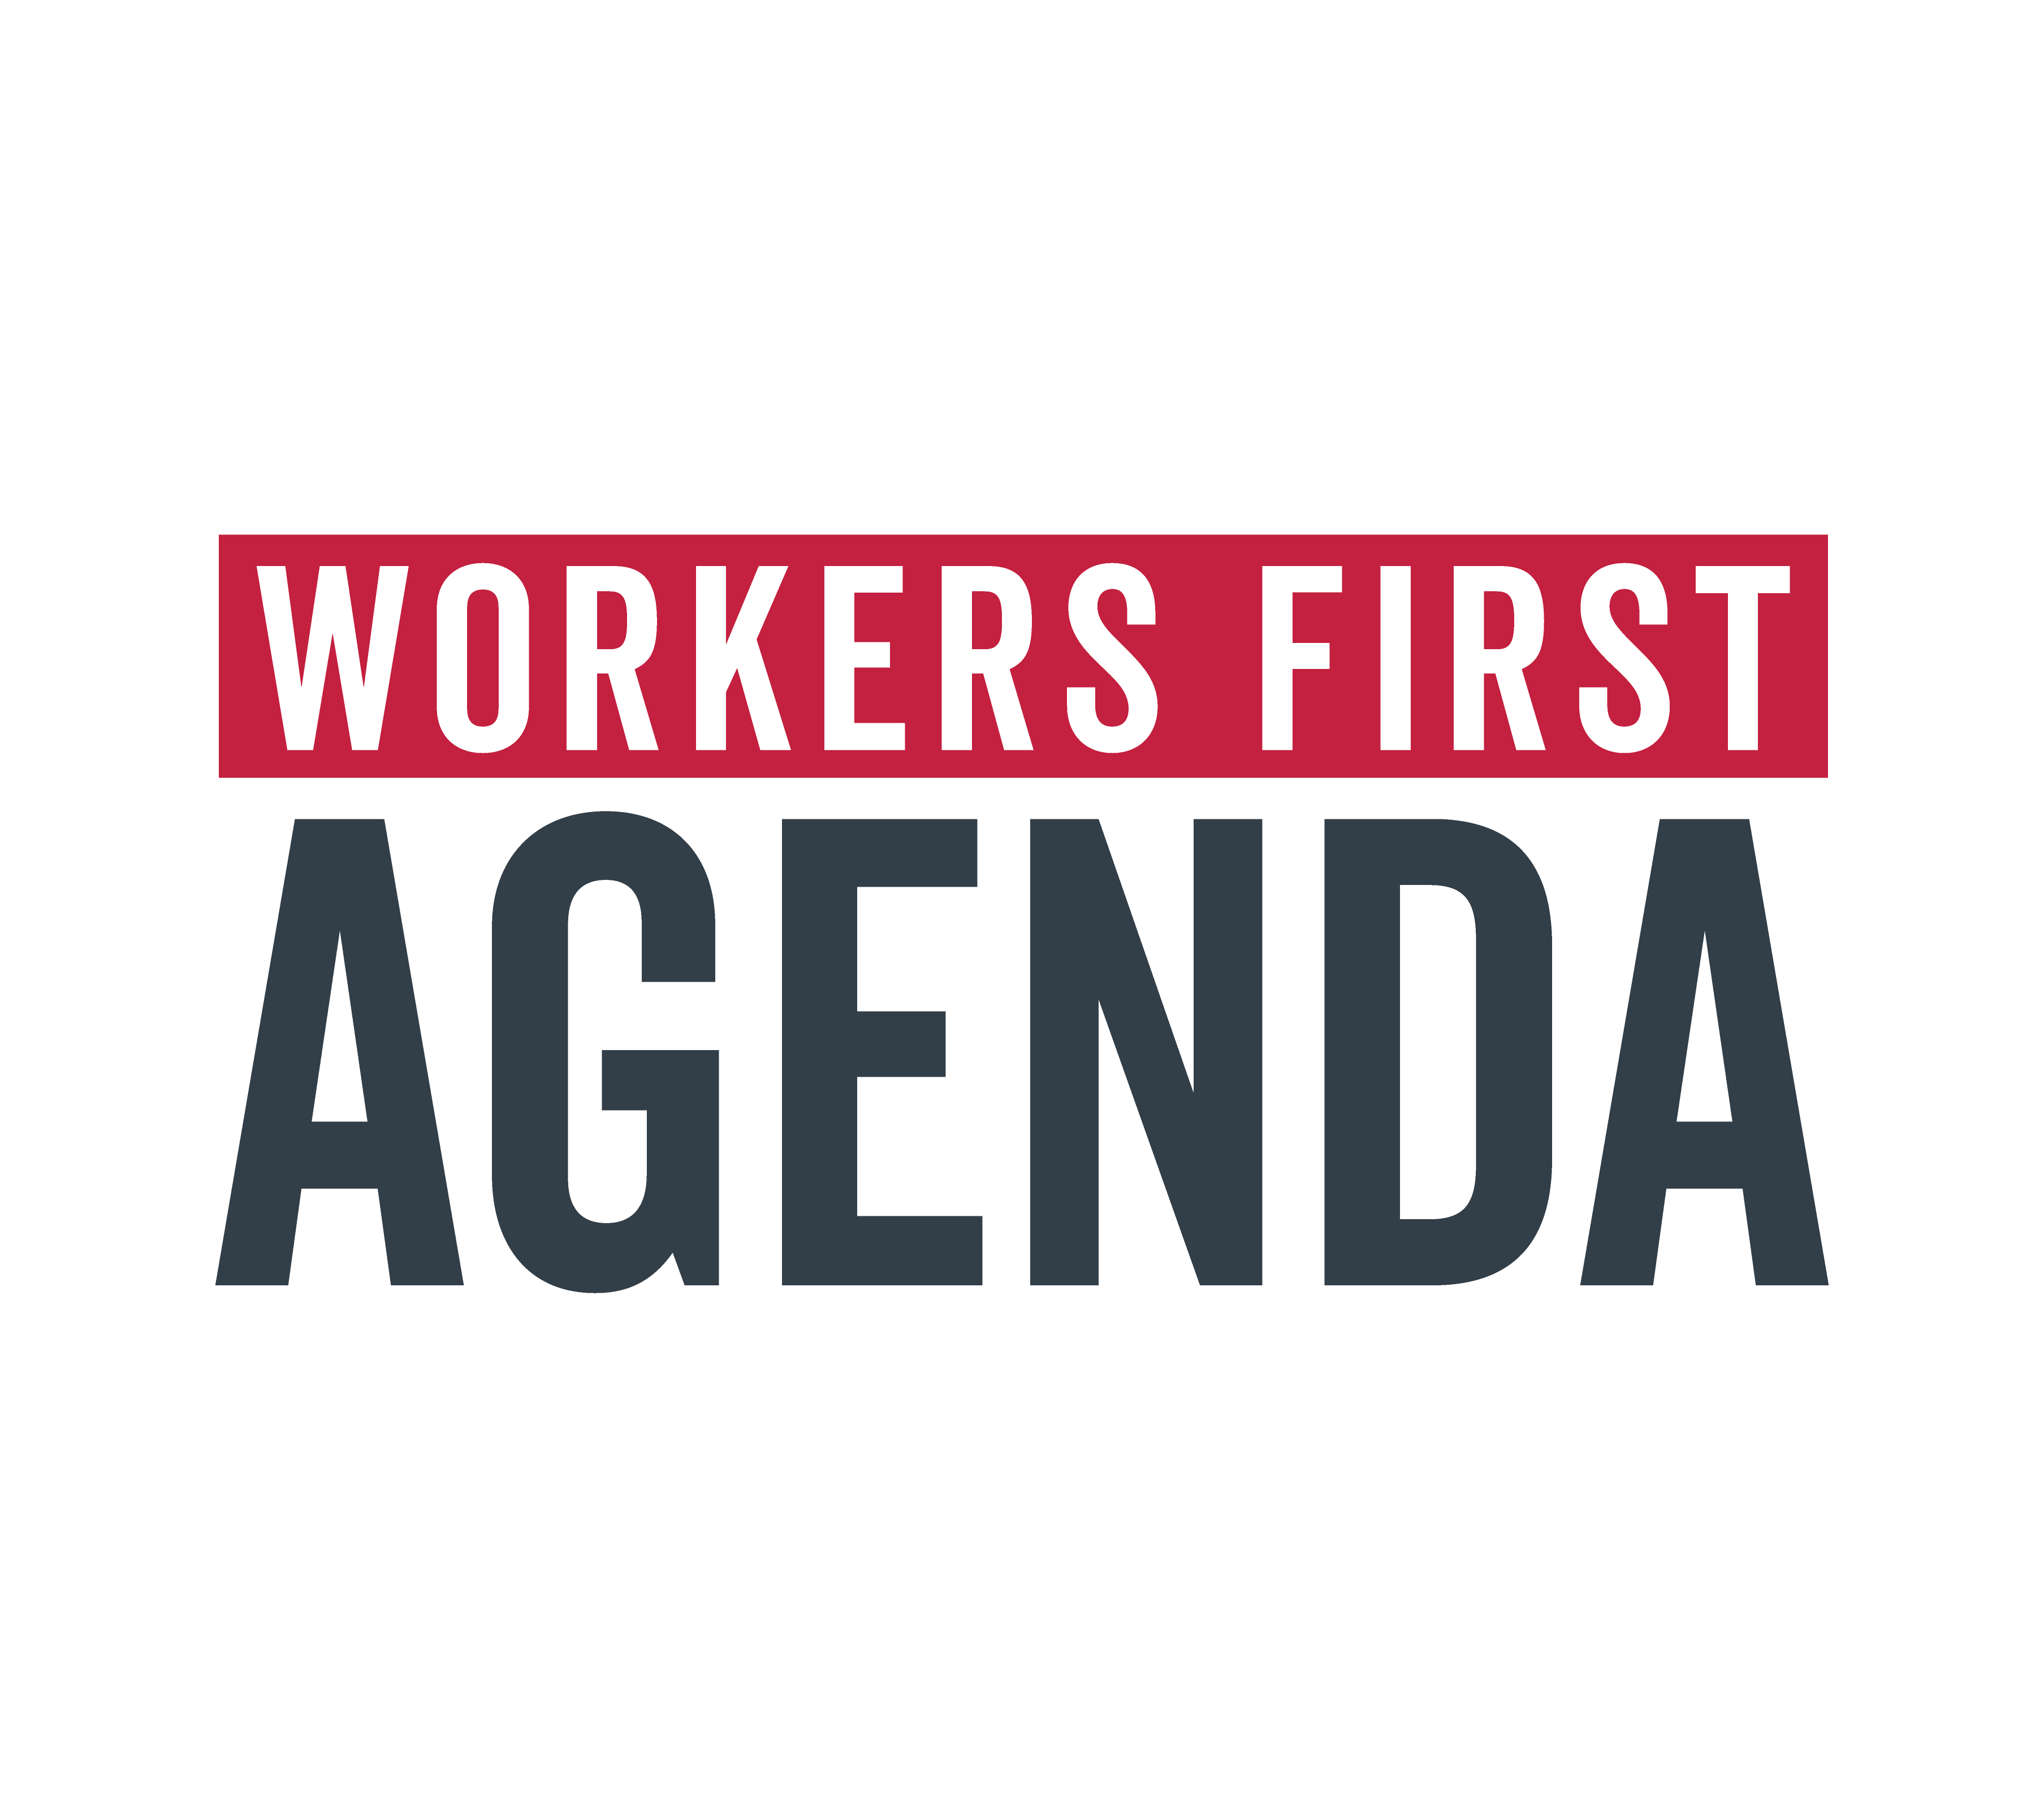 Workers First Agenda